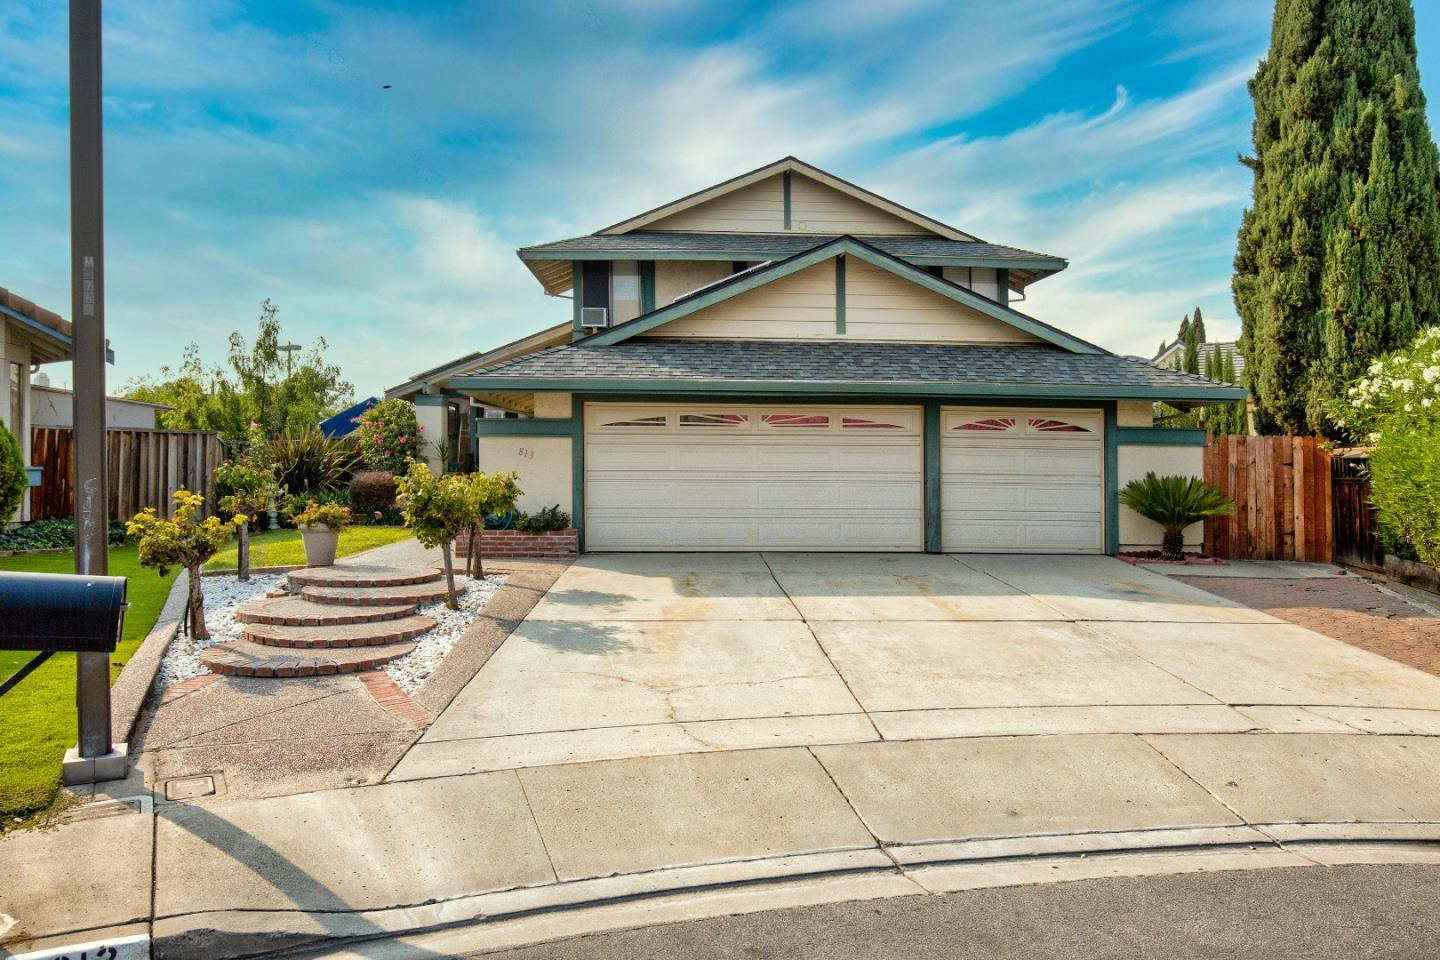 Photo for 813 Fulton CT, MILPITAS, CA 95035 (MLS # ML81809378)